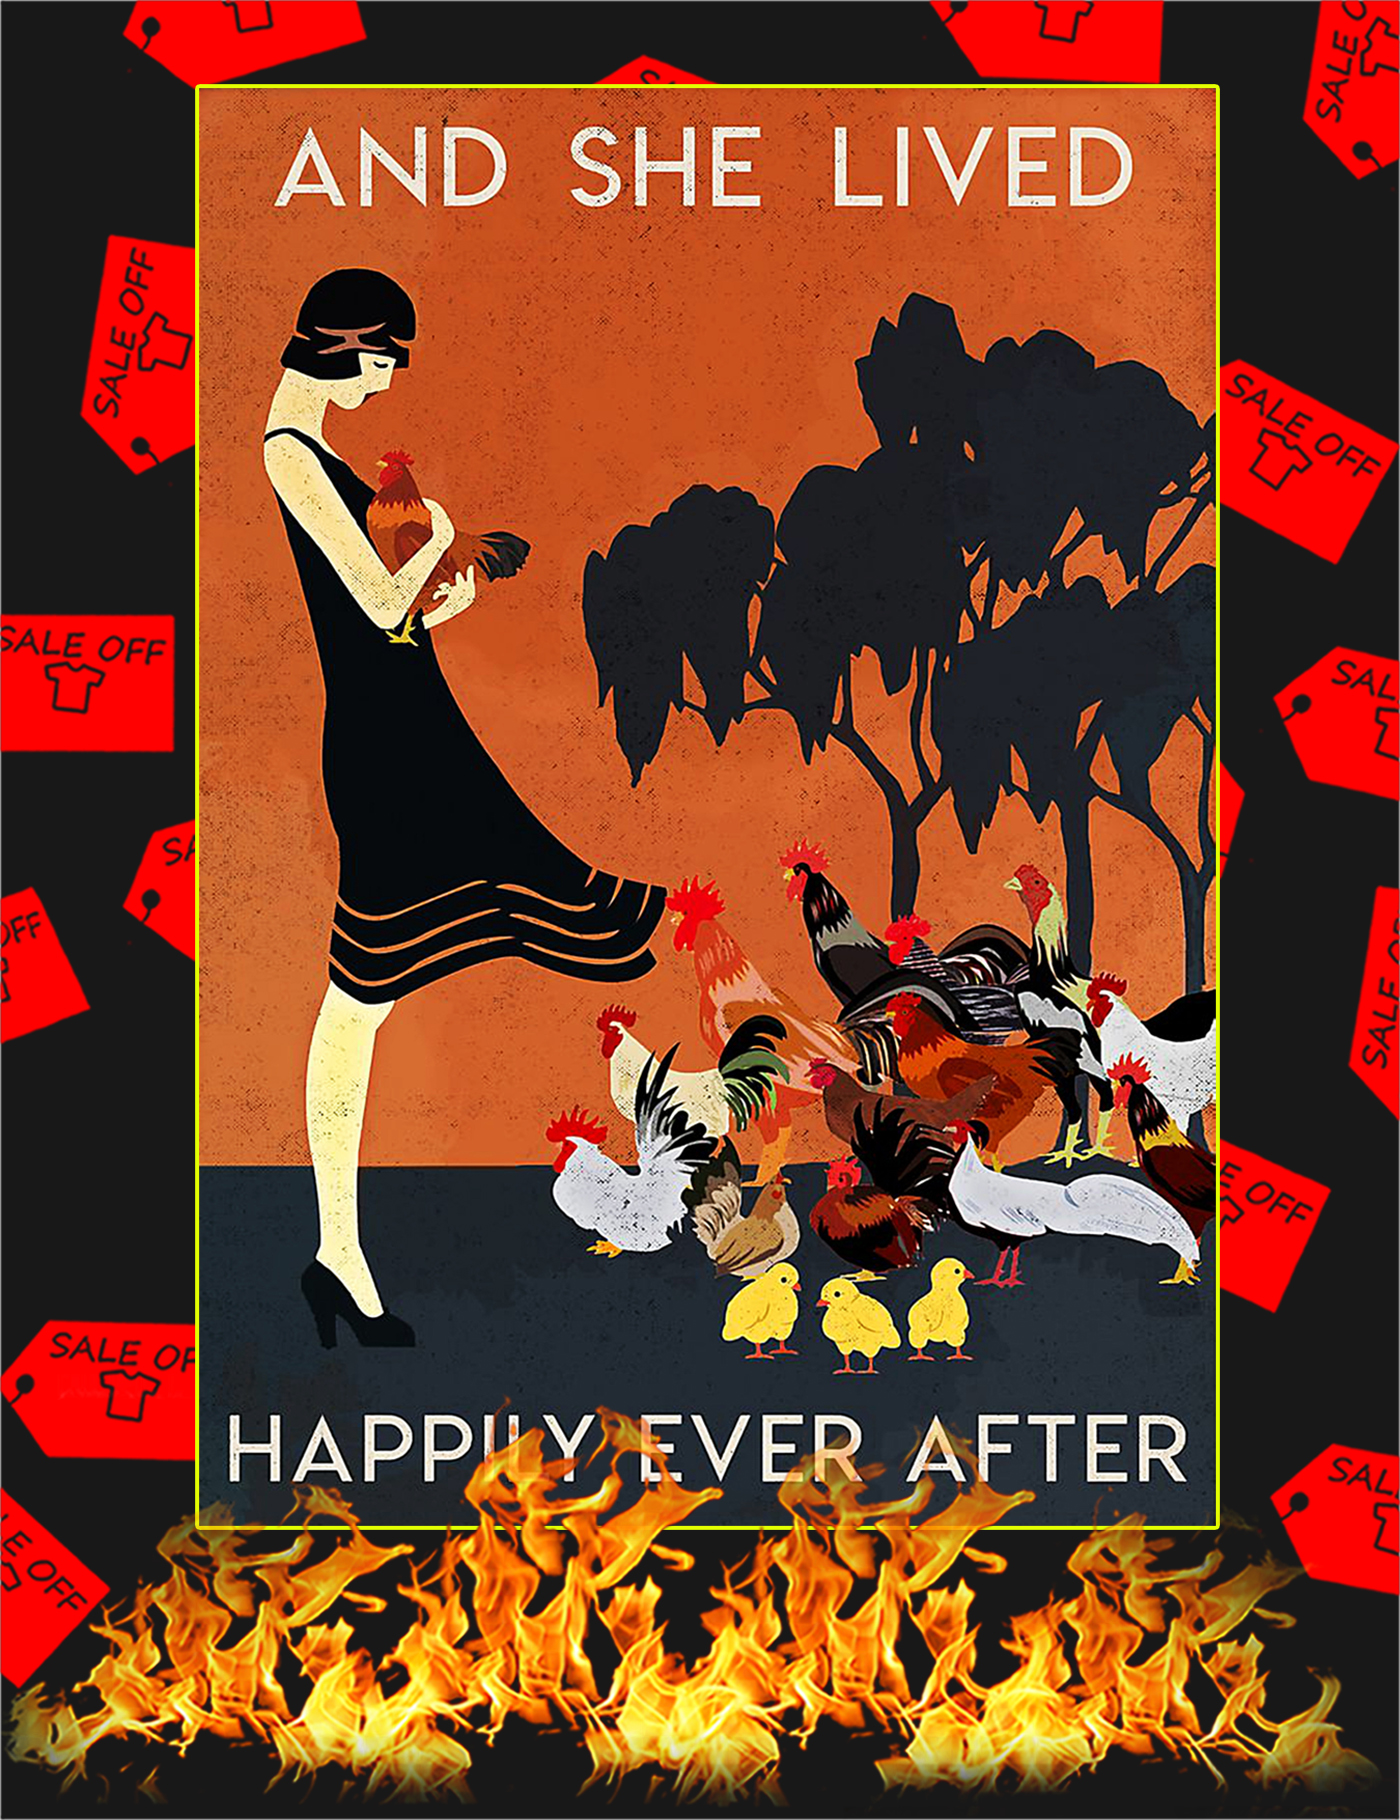 Chicken And she lived happily ever after poster - A1